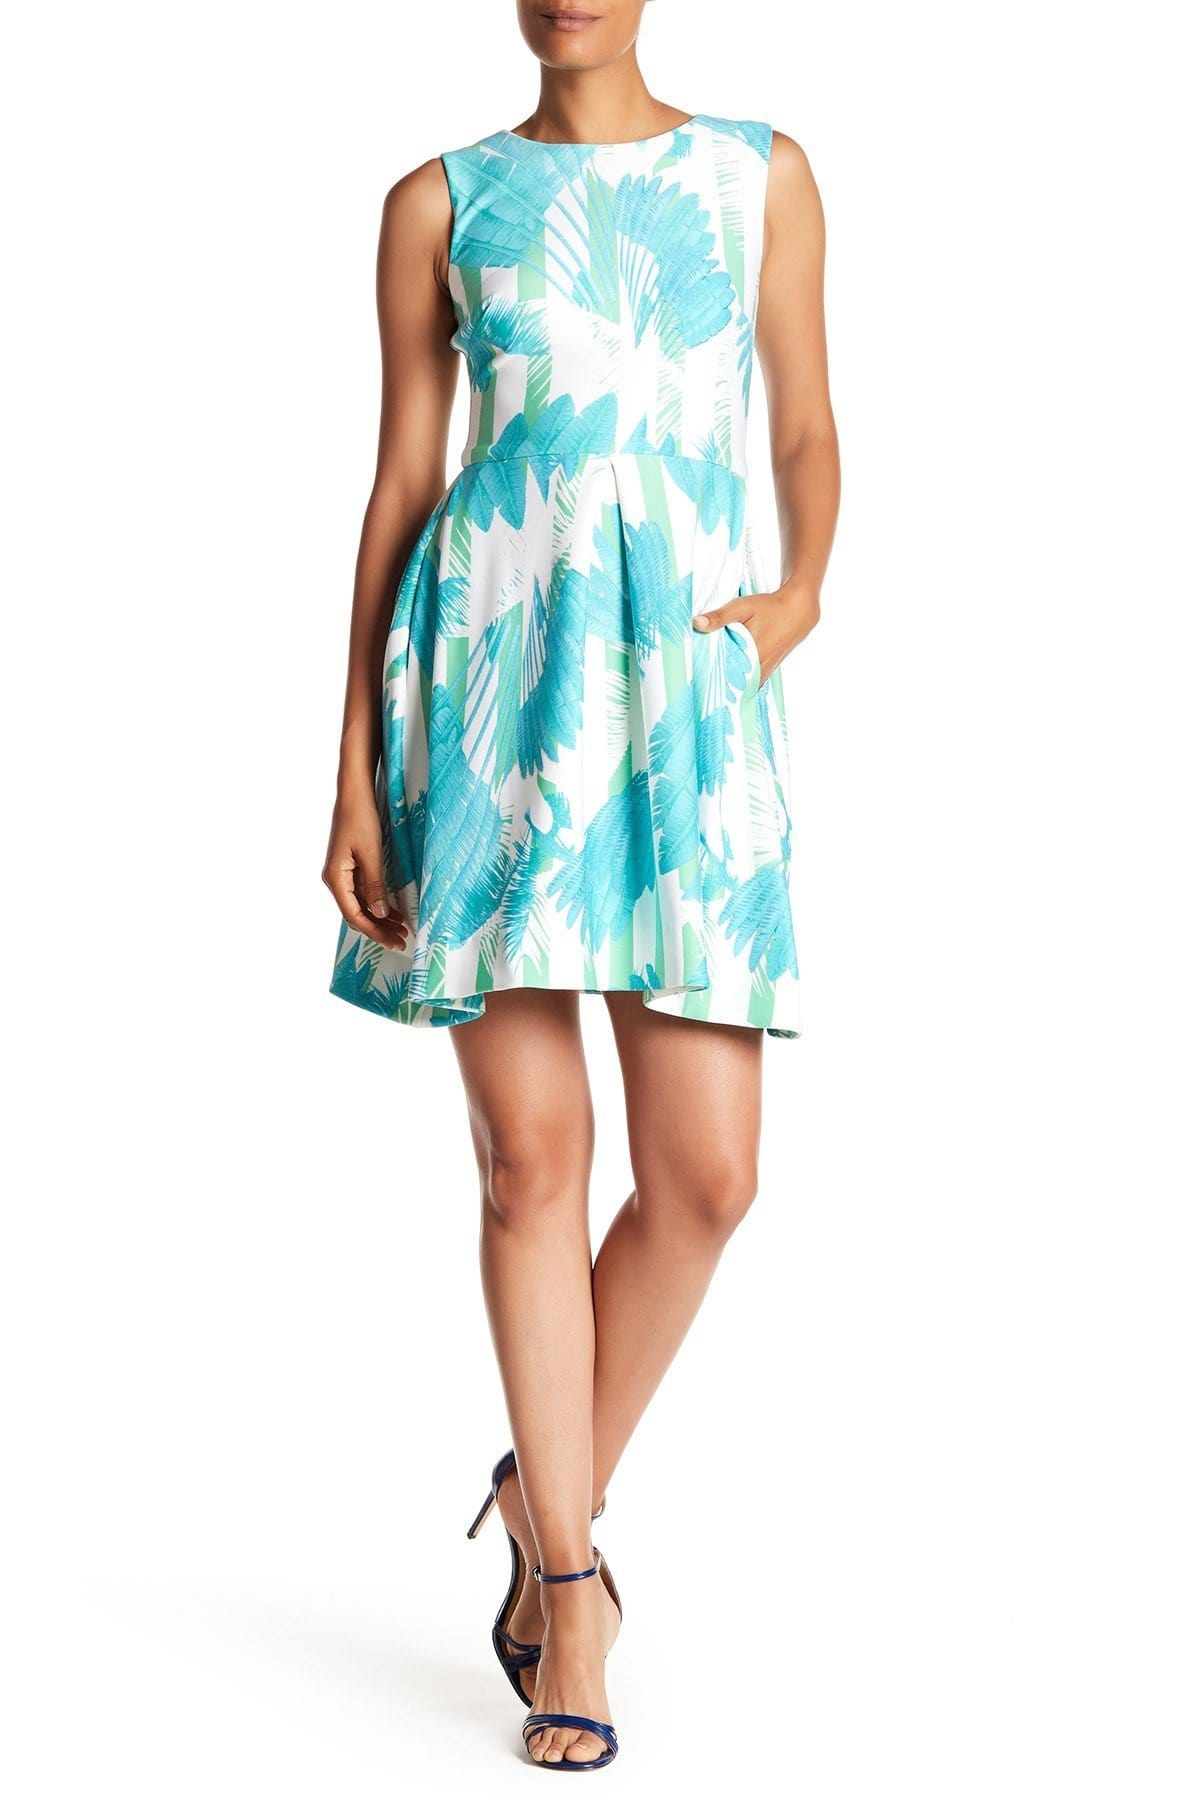 Taylor - 9766MJ Sleeveless Palm Print Pleated Dress In Blue and Print